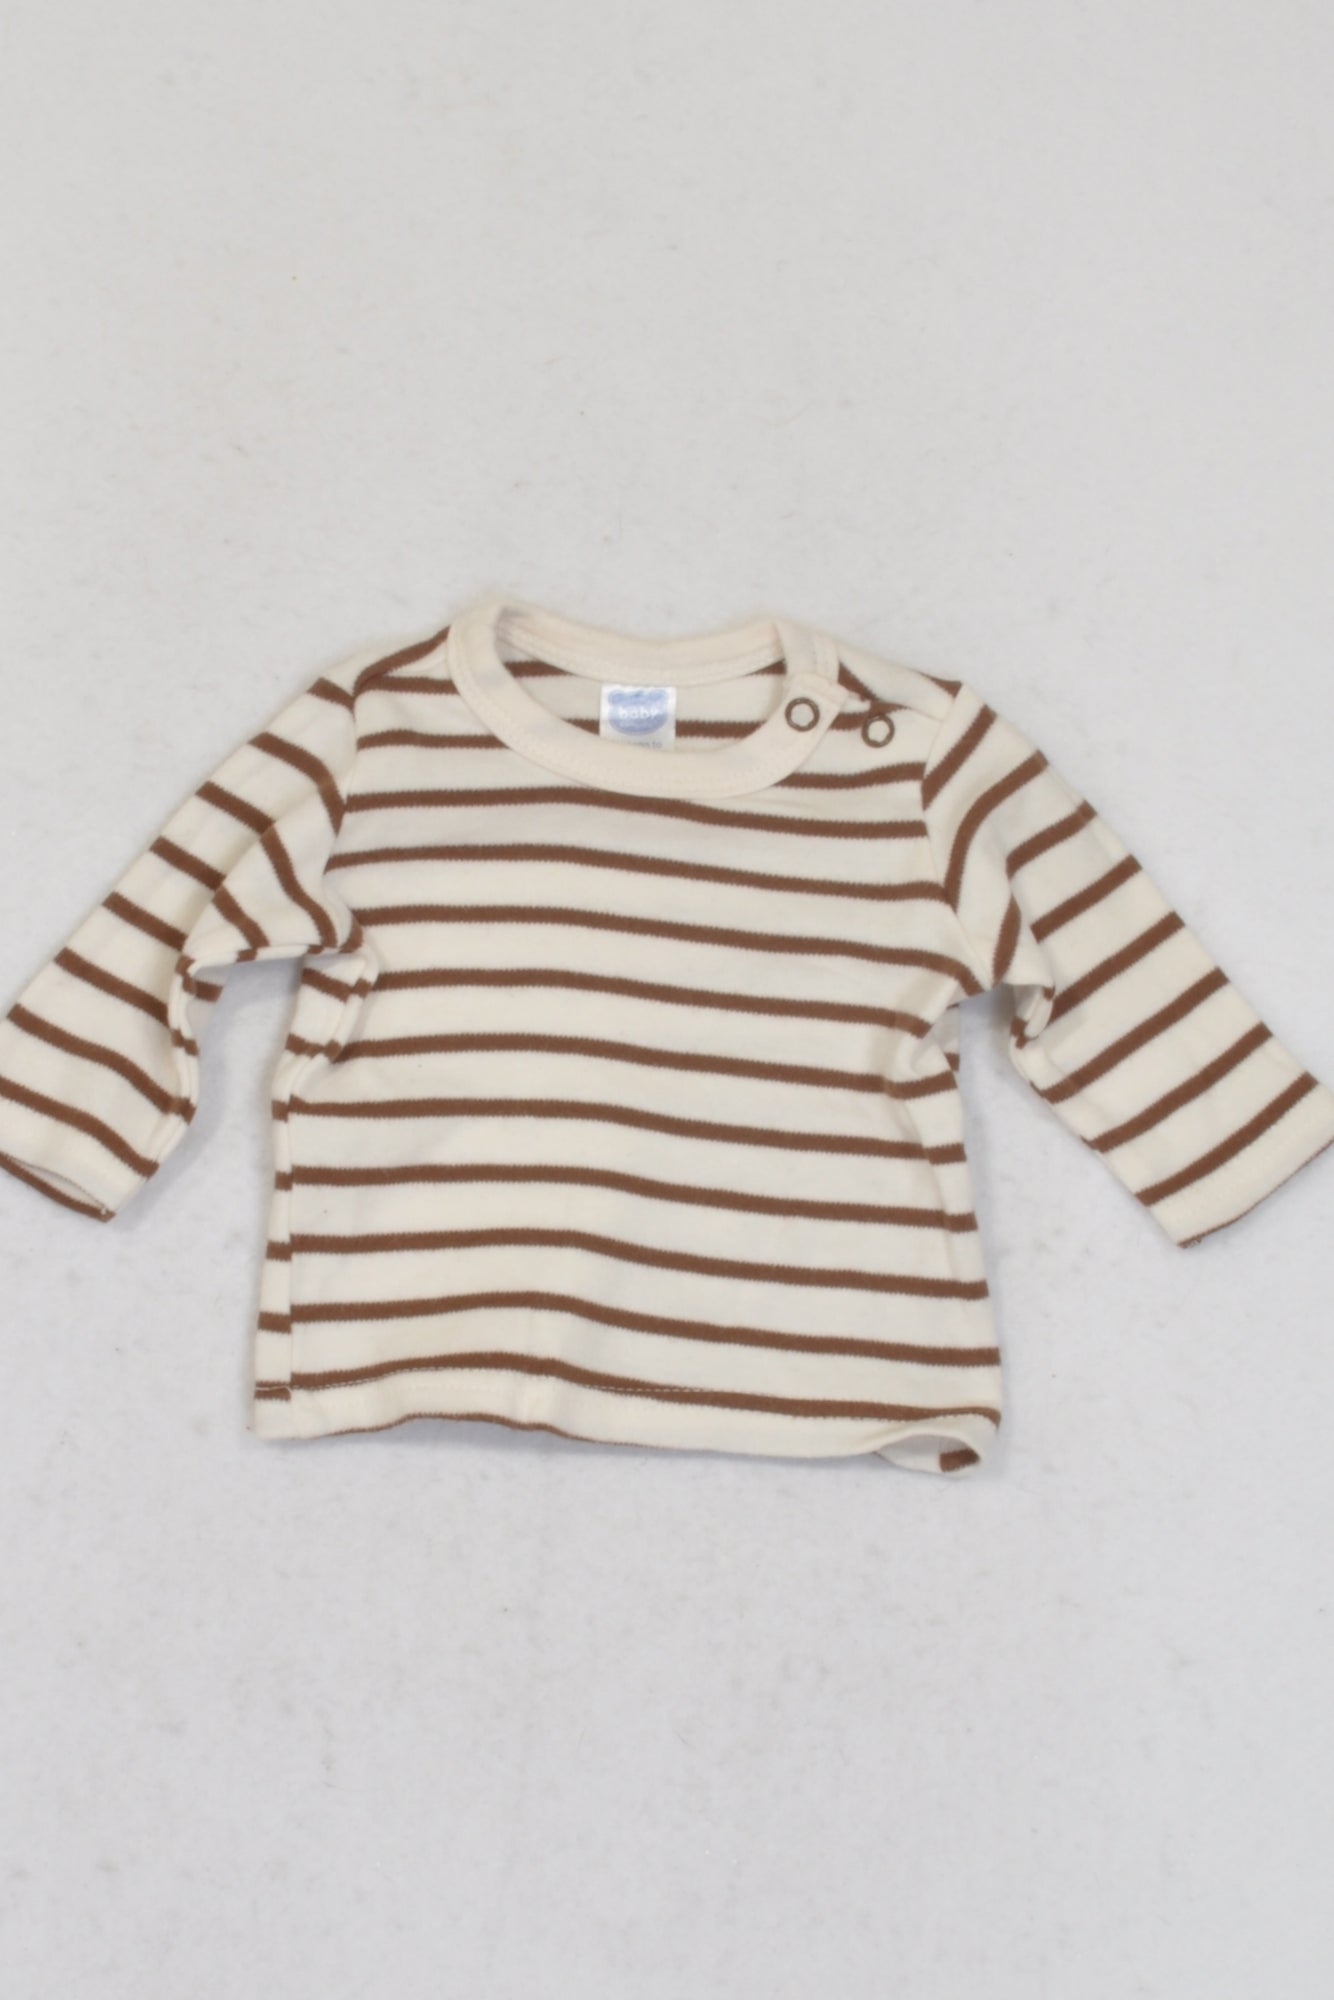 Ackermans Brown & Off White Striped T-shirt Boys N-B